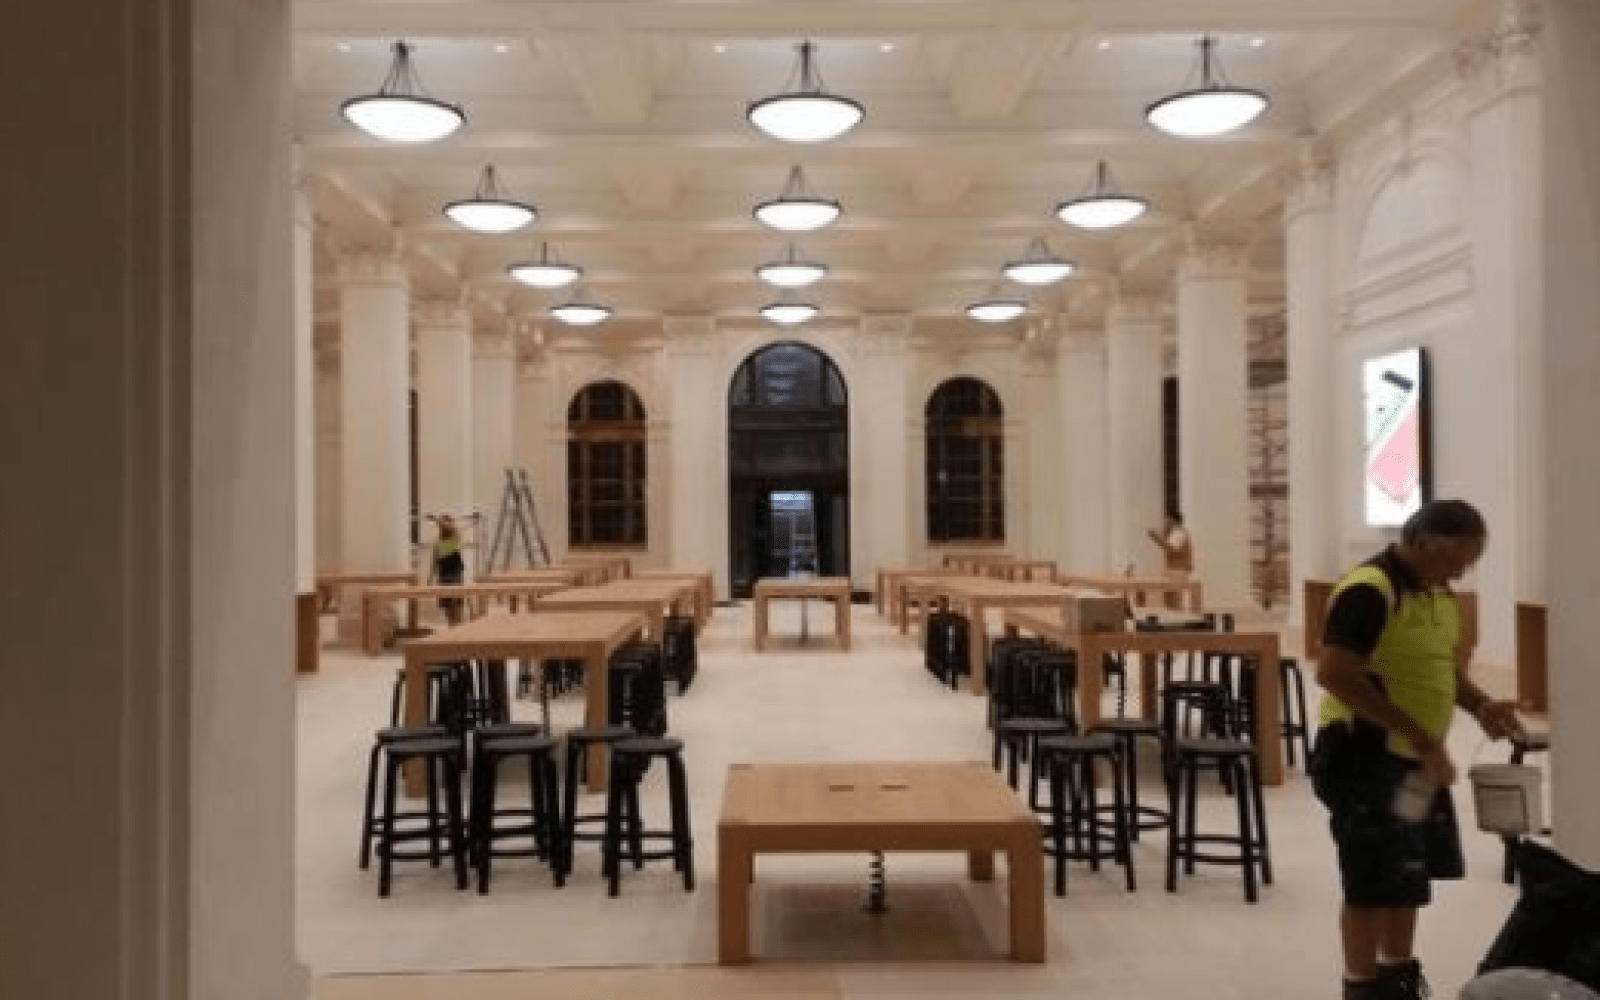 Leaked images provide a first look at the new flagship Apple Store in Brisbane, Australia